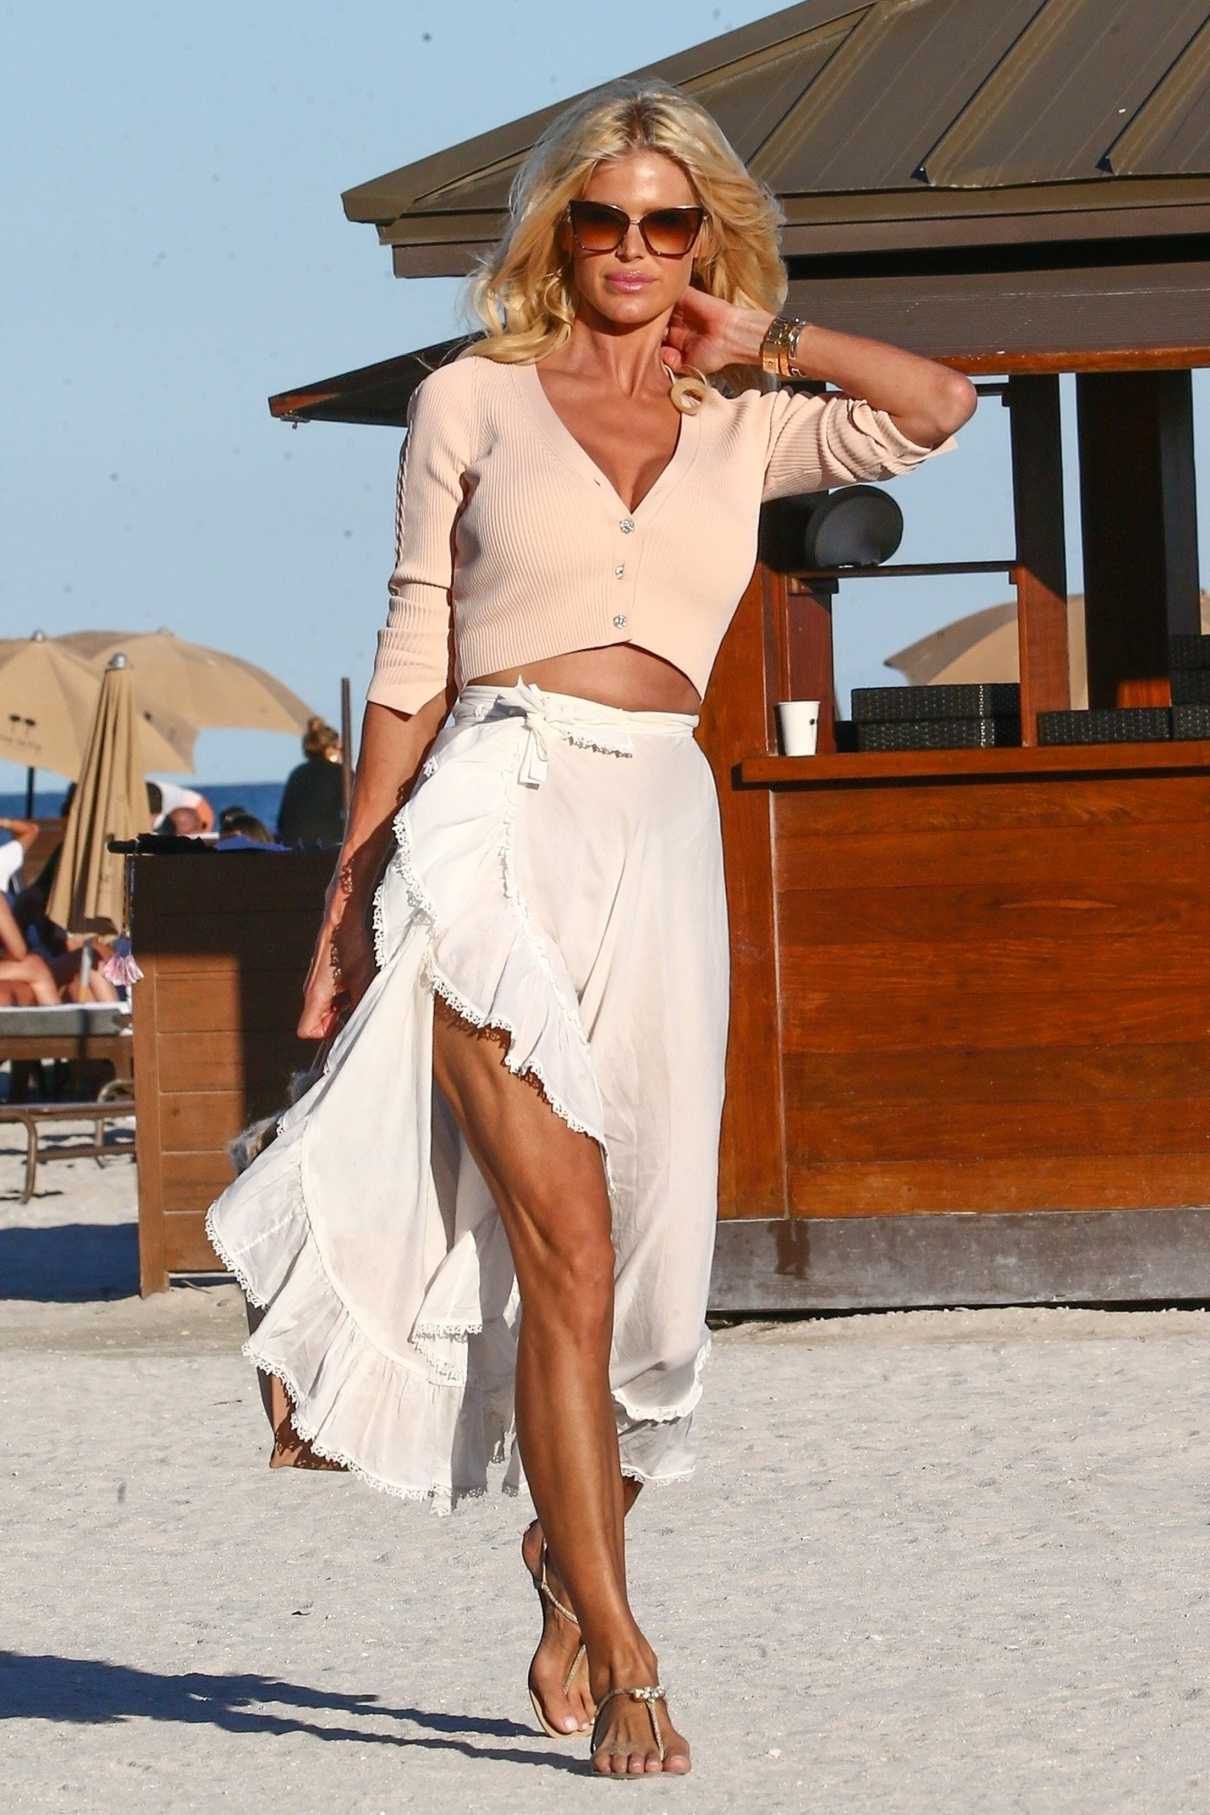 Victoria Silvstedt in a White Skirt